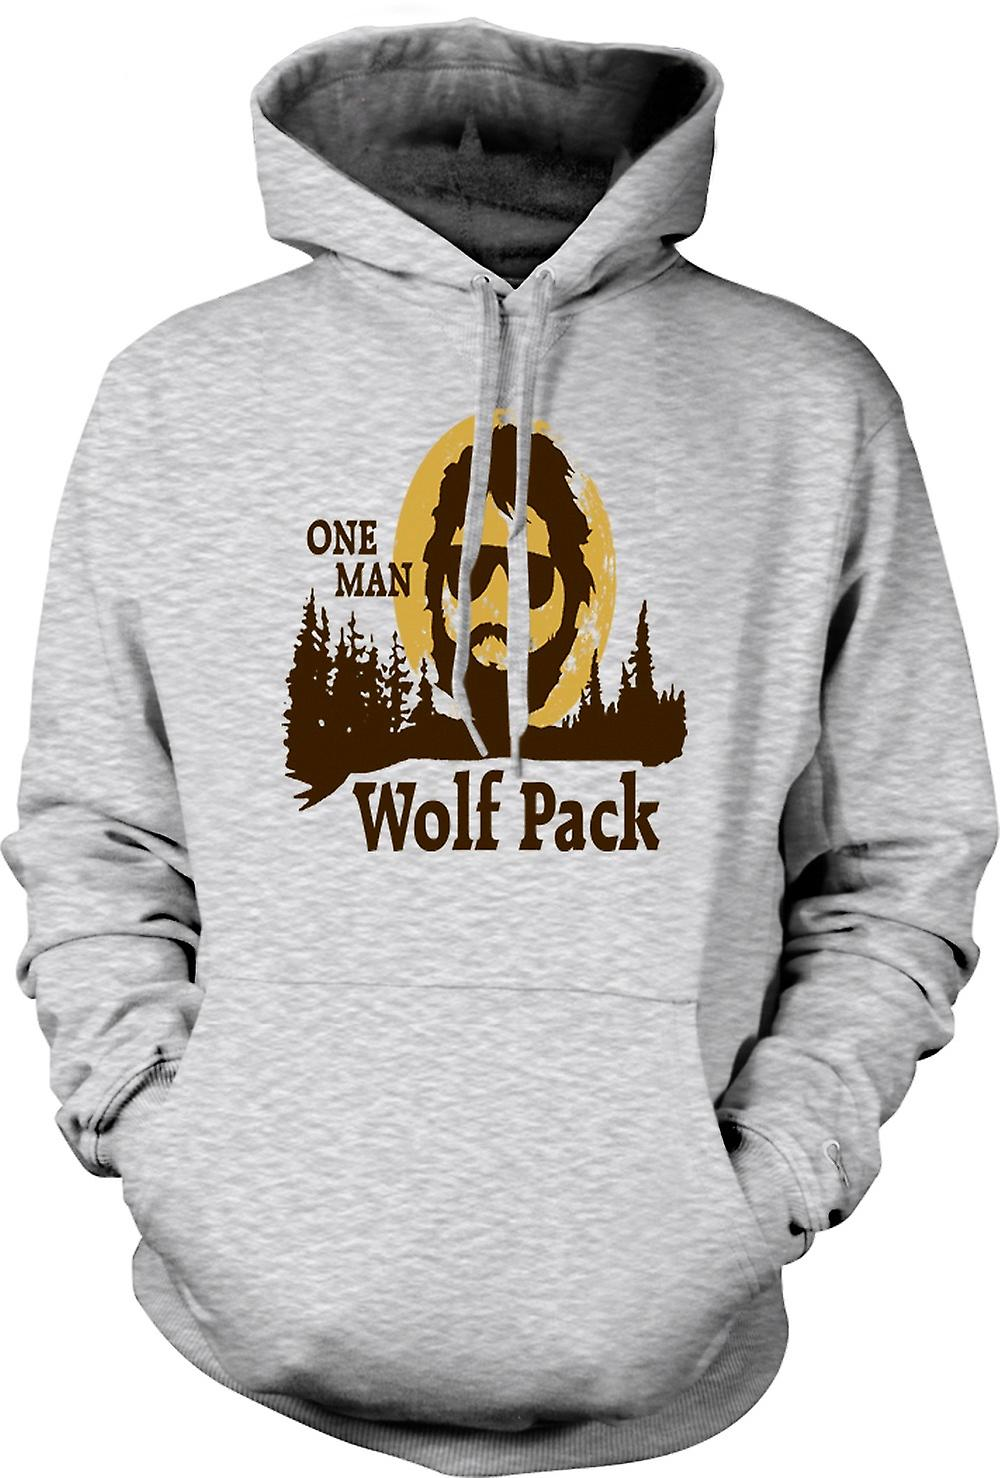 Mens Hoodie - The Hangover One Man Wolf Pack - Funny